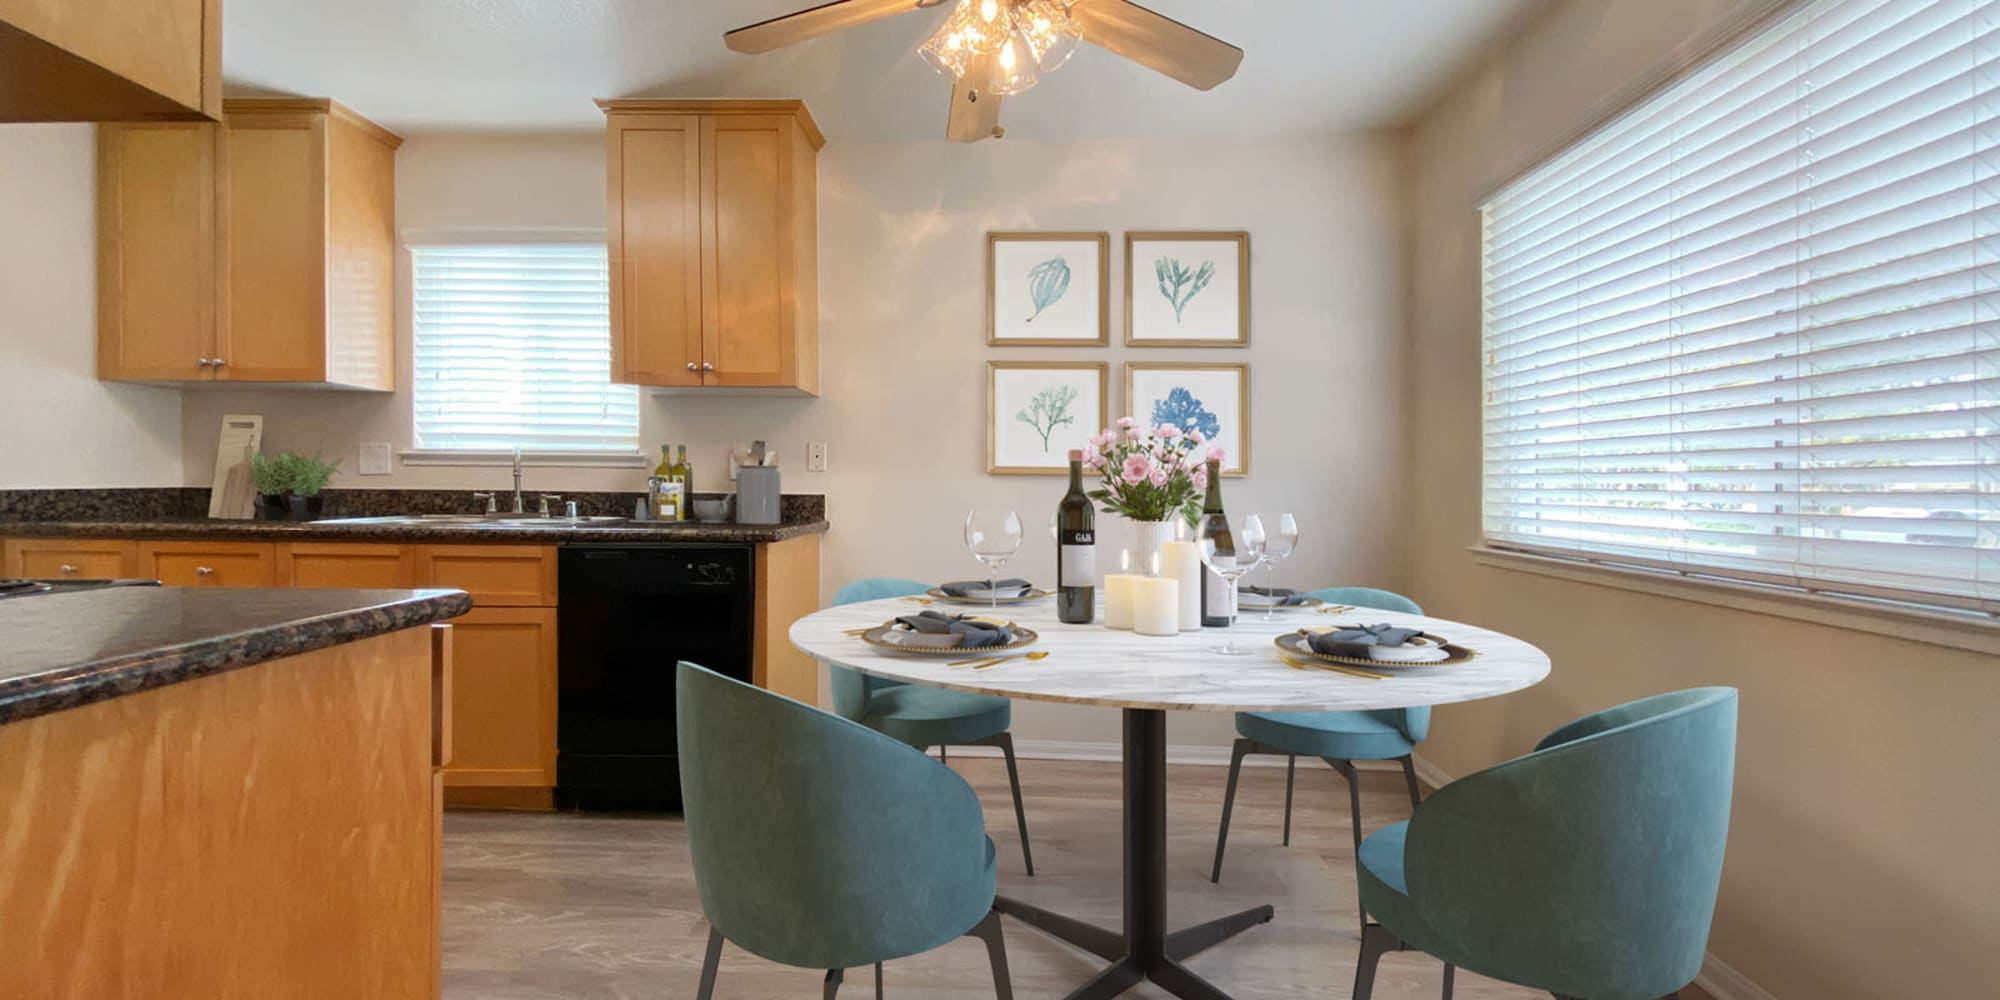 Ceiling fan above the cozy dining nook adjacent to a model apartment's kitchen at Pleasanton Place Apartment Homes in Pleasanton, California